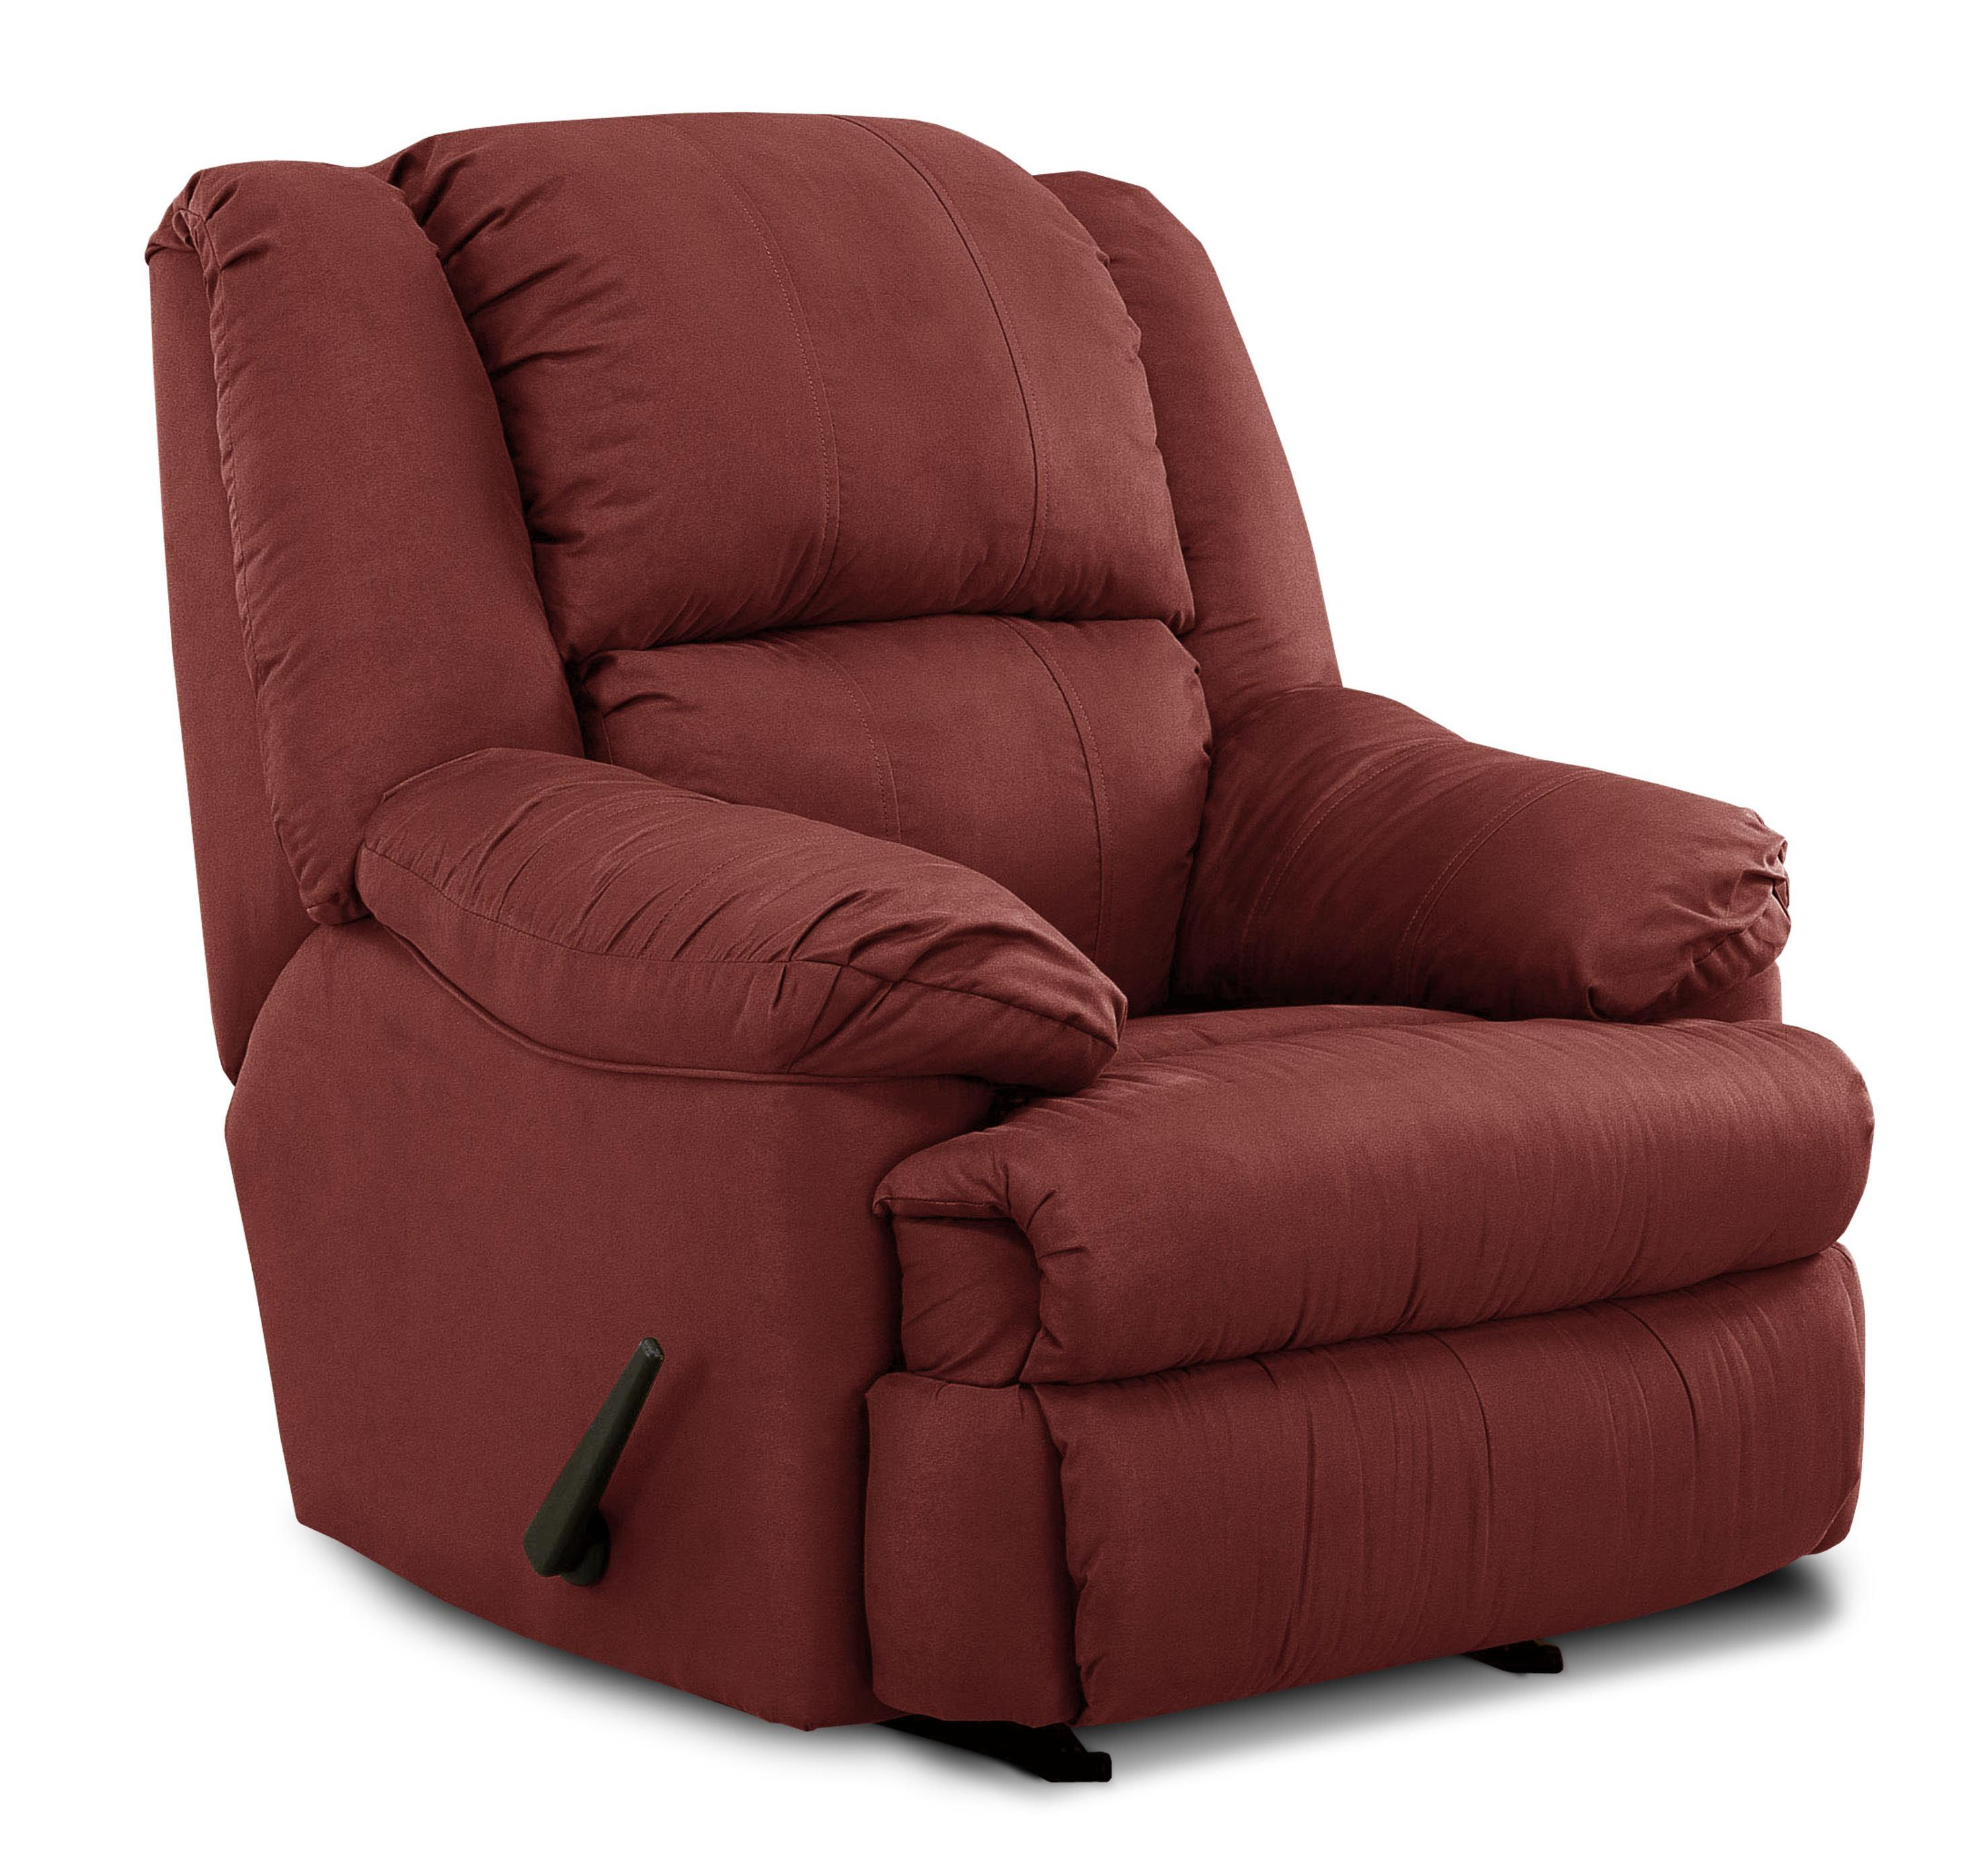 United Furniture Industries 604 Casual Rocker Recliner - Item Number: 604 Rocker Burgundy